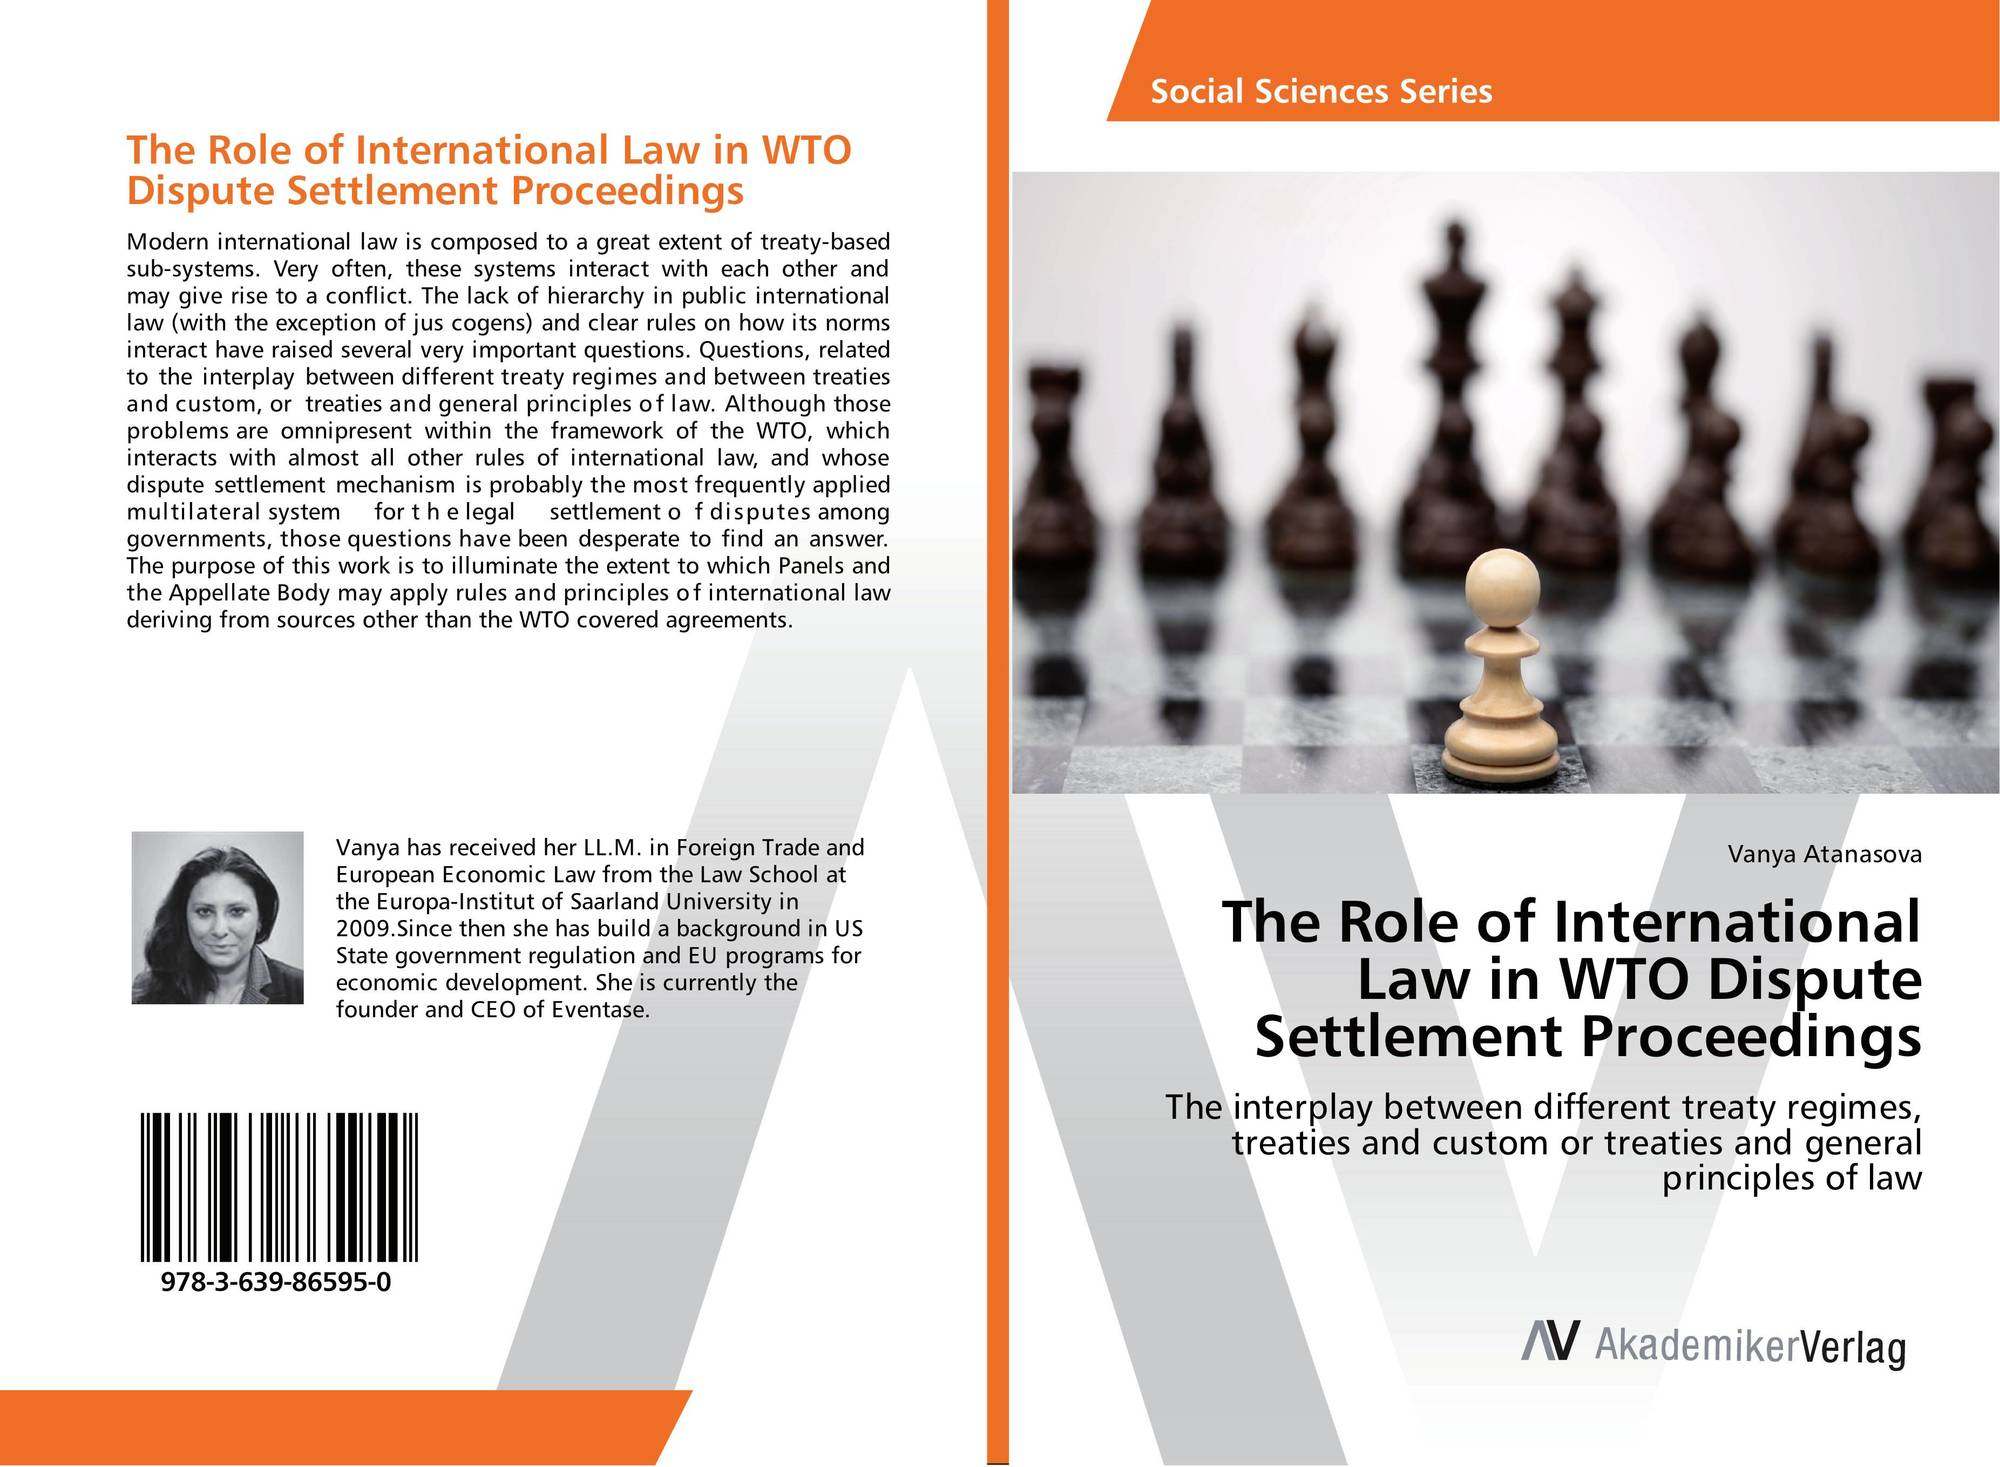 an analysis of the different views on the role played by international regimes in international poli International regimes essay examples 1 total result an analysis of the different views on the role played by international regimes in international politics.